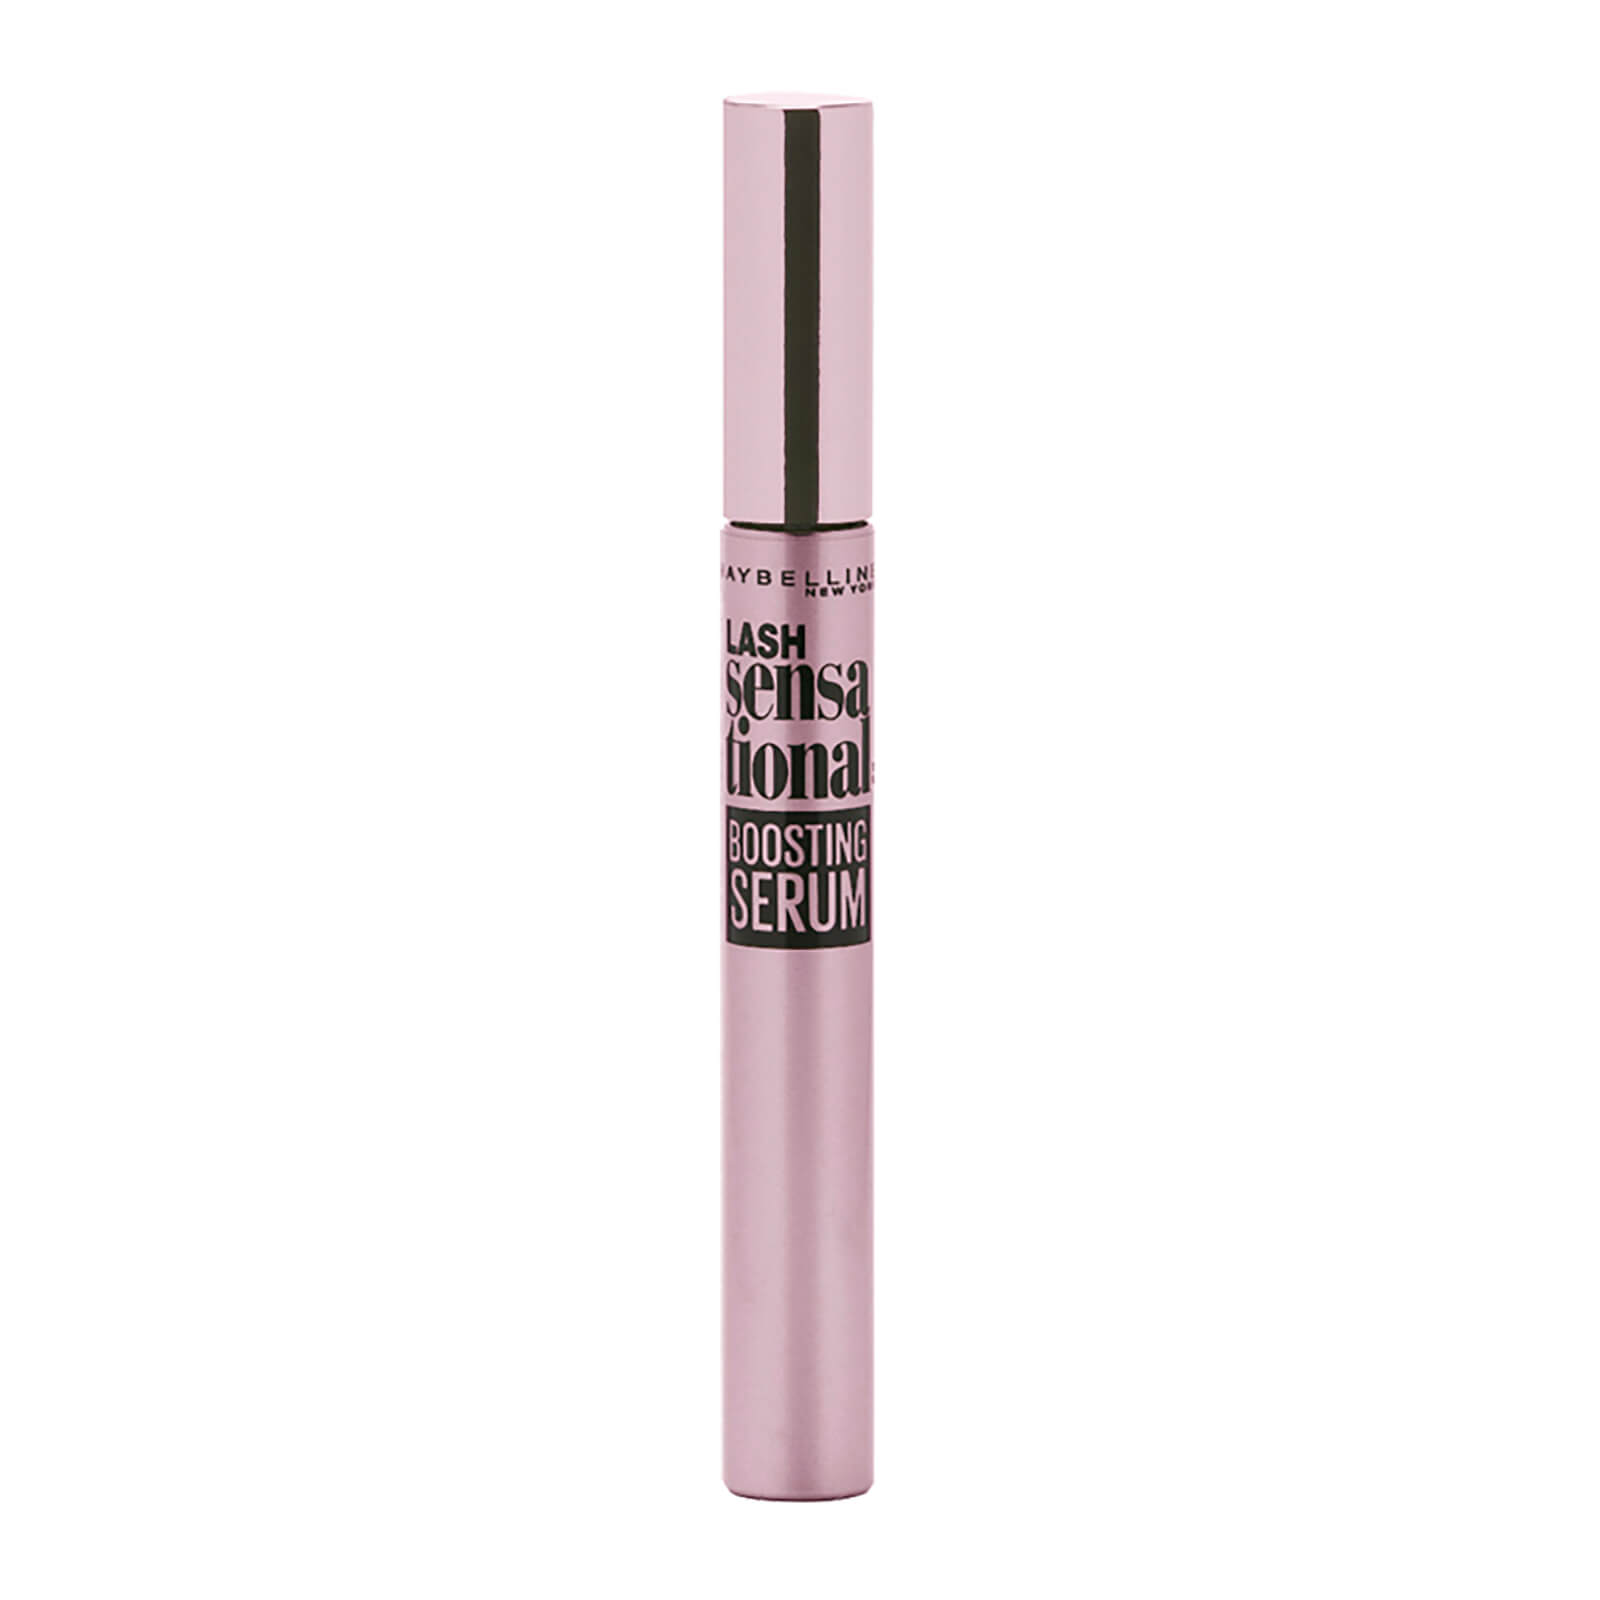 9468fa0b87b Maybelline Lash Sensational Mascara Serum | Free Shipping | Lookfantastic